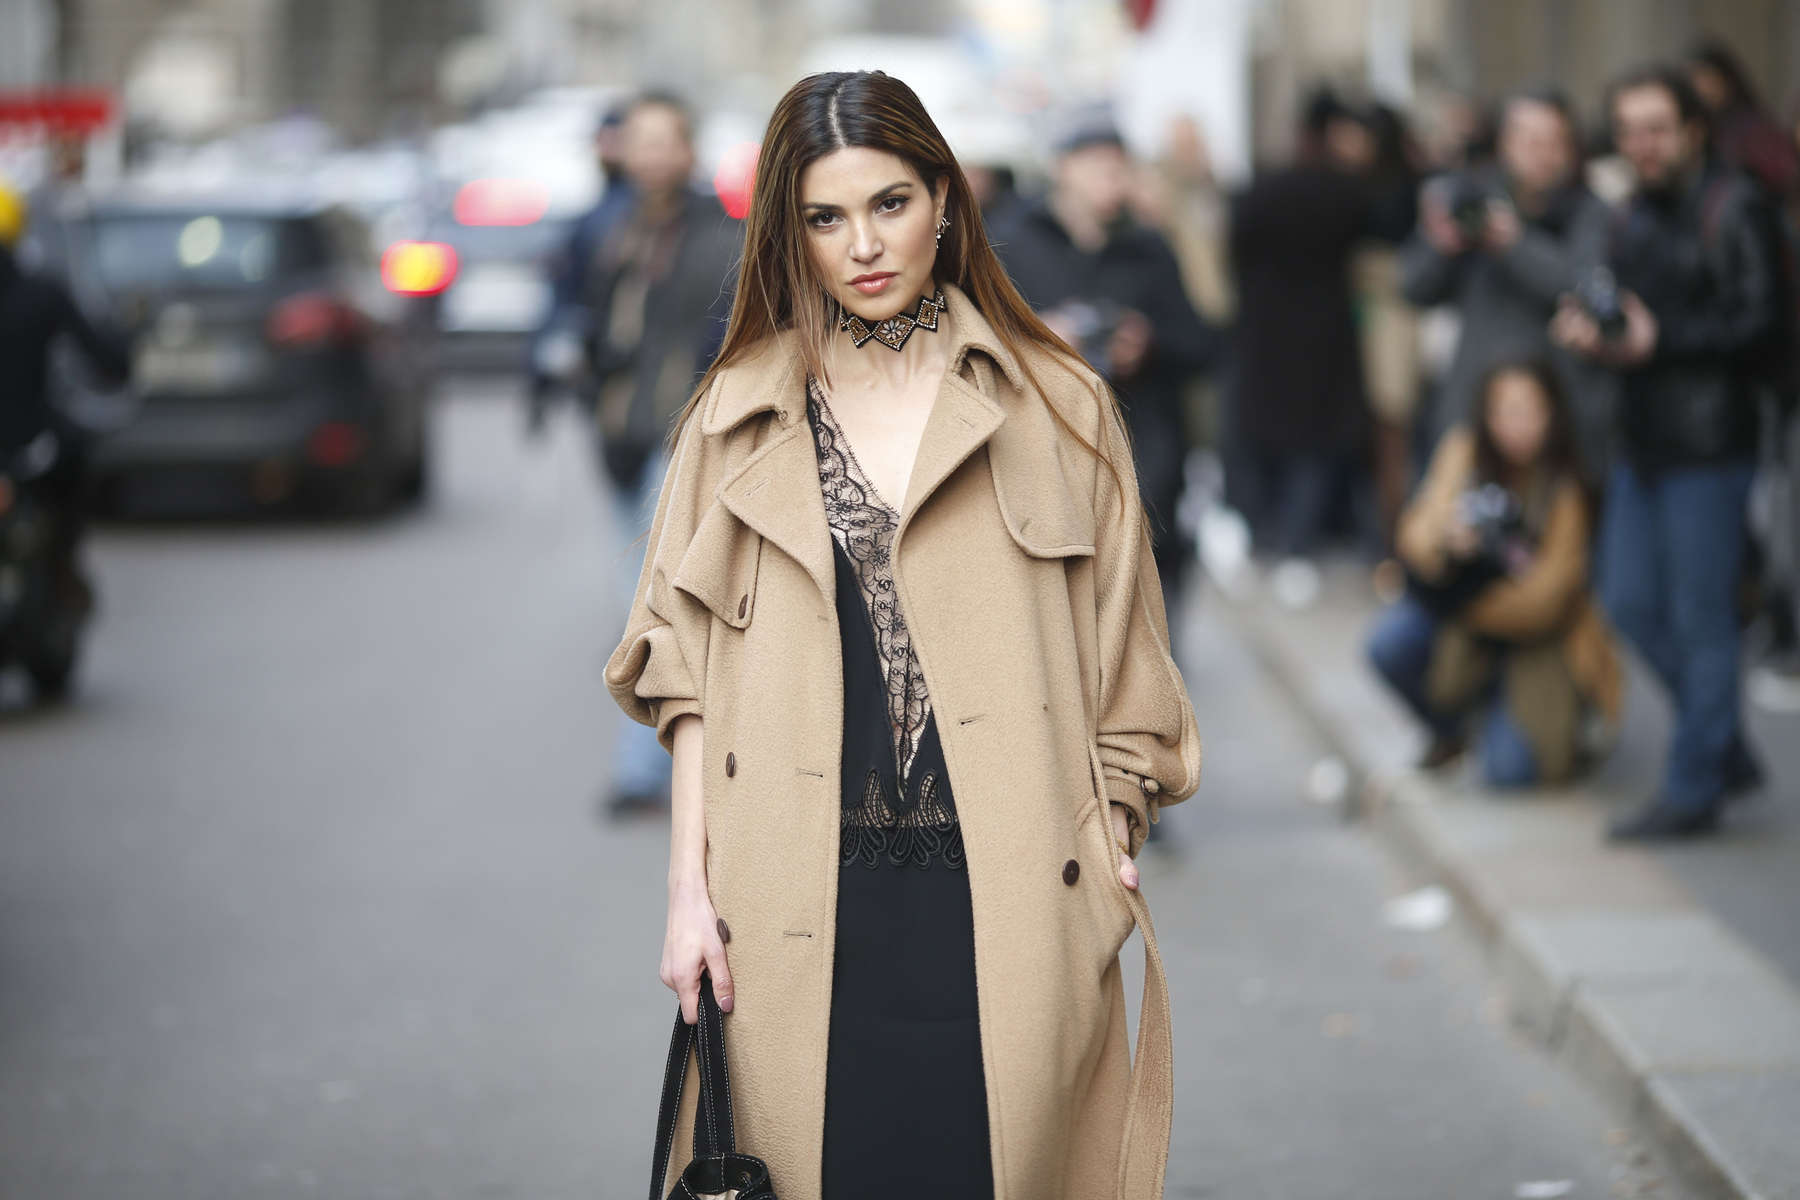 Negin Mirsalehi - Milan Fashion Week, Feb. 2016